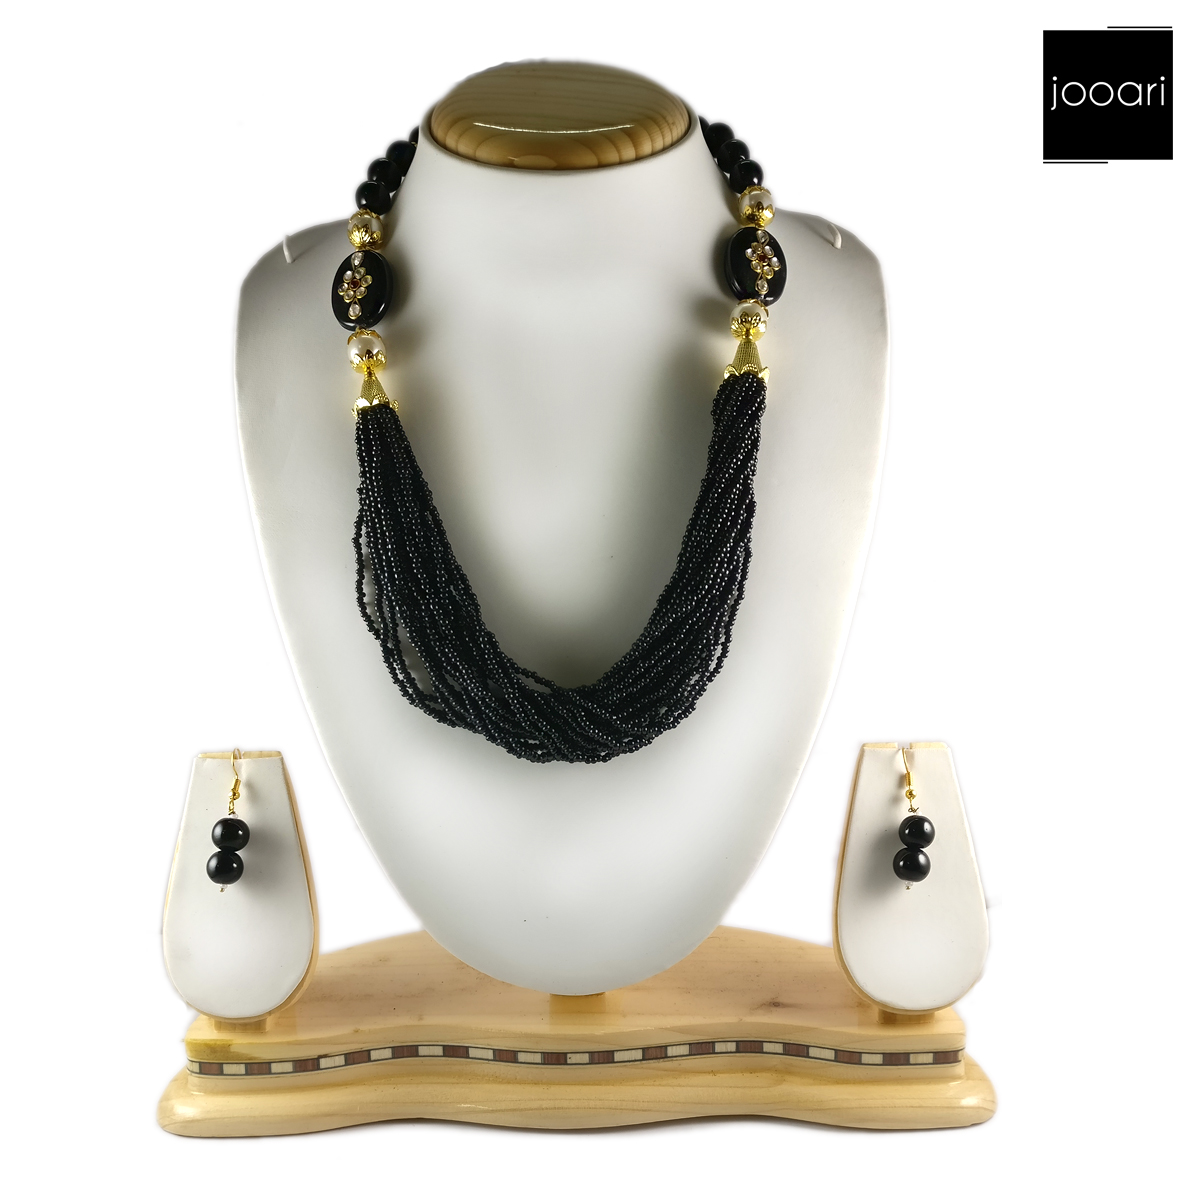 Black Pearl Designer Necklace Set and Earrings with Black Bead Chain for Women